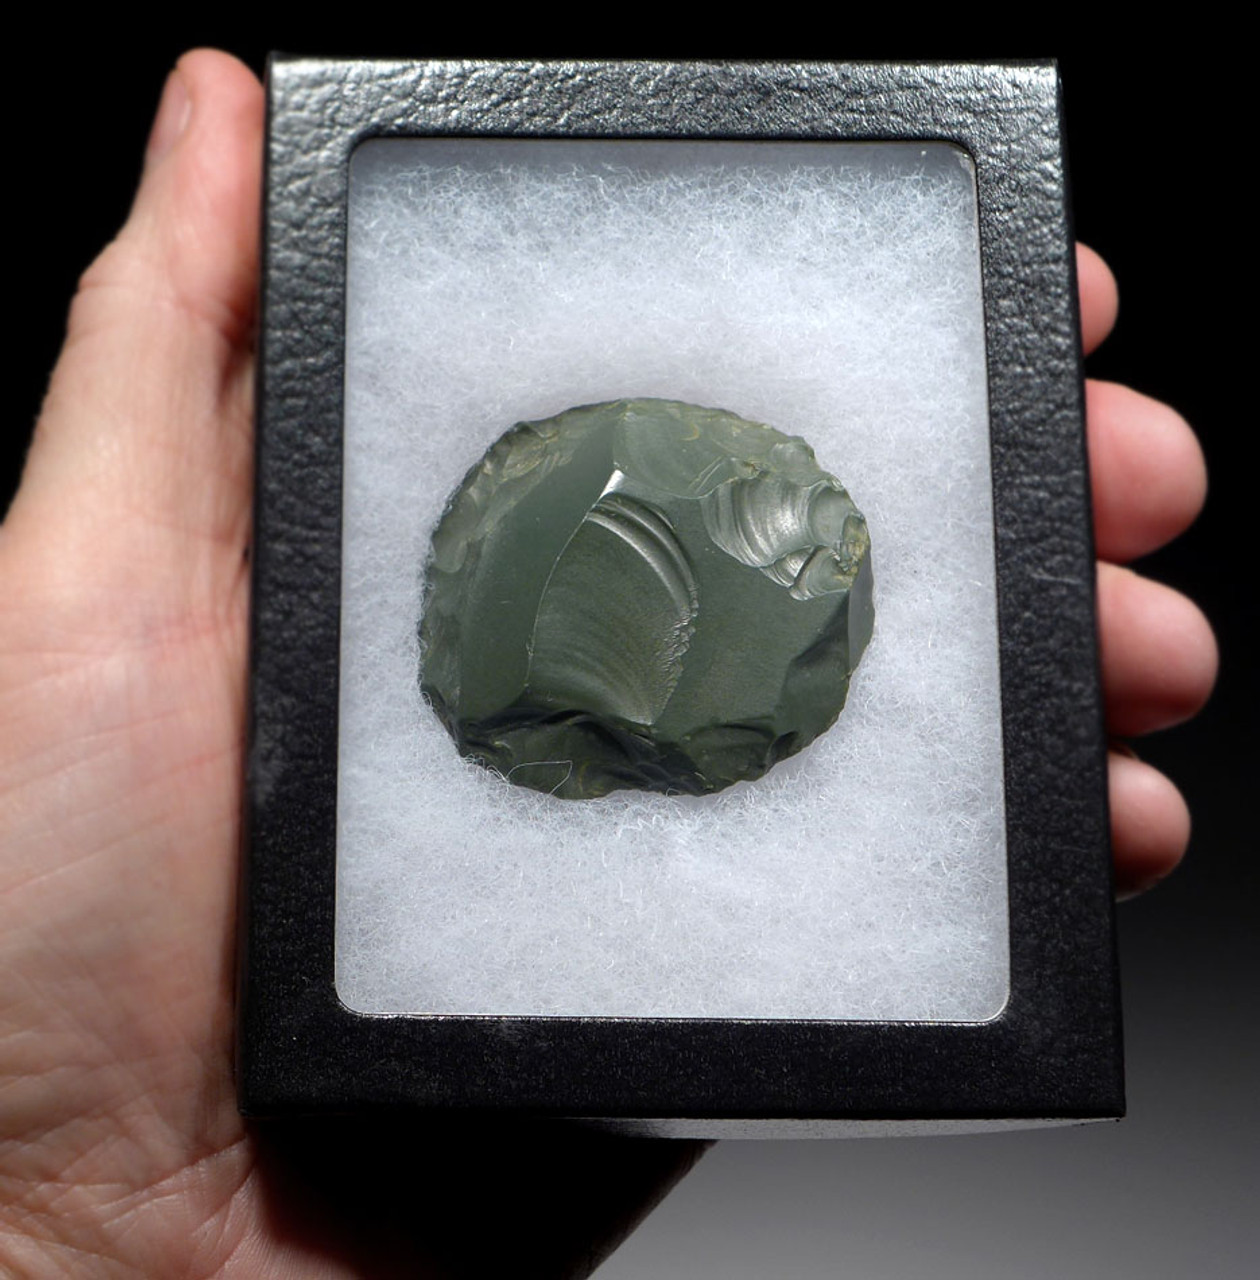 TENERIAN AFRICAN NEOLITHIC ROBUST GREEN JASPER DISCOIDAL SCRAPER FROM THE PEOPLE OF THE GREEN SAHARA *CAP240